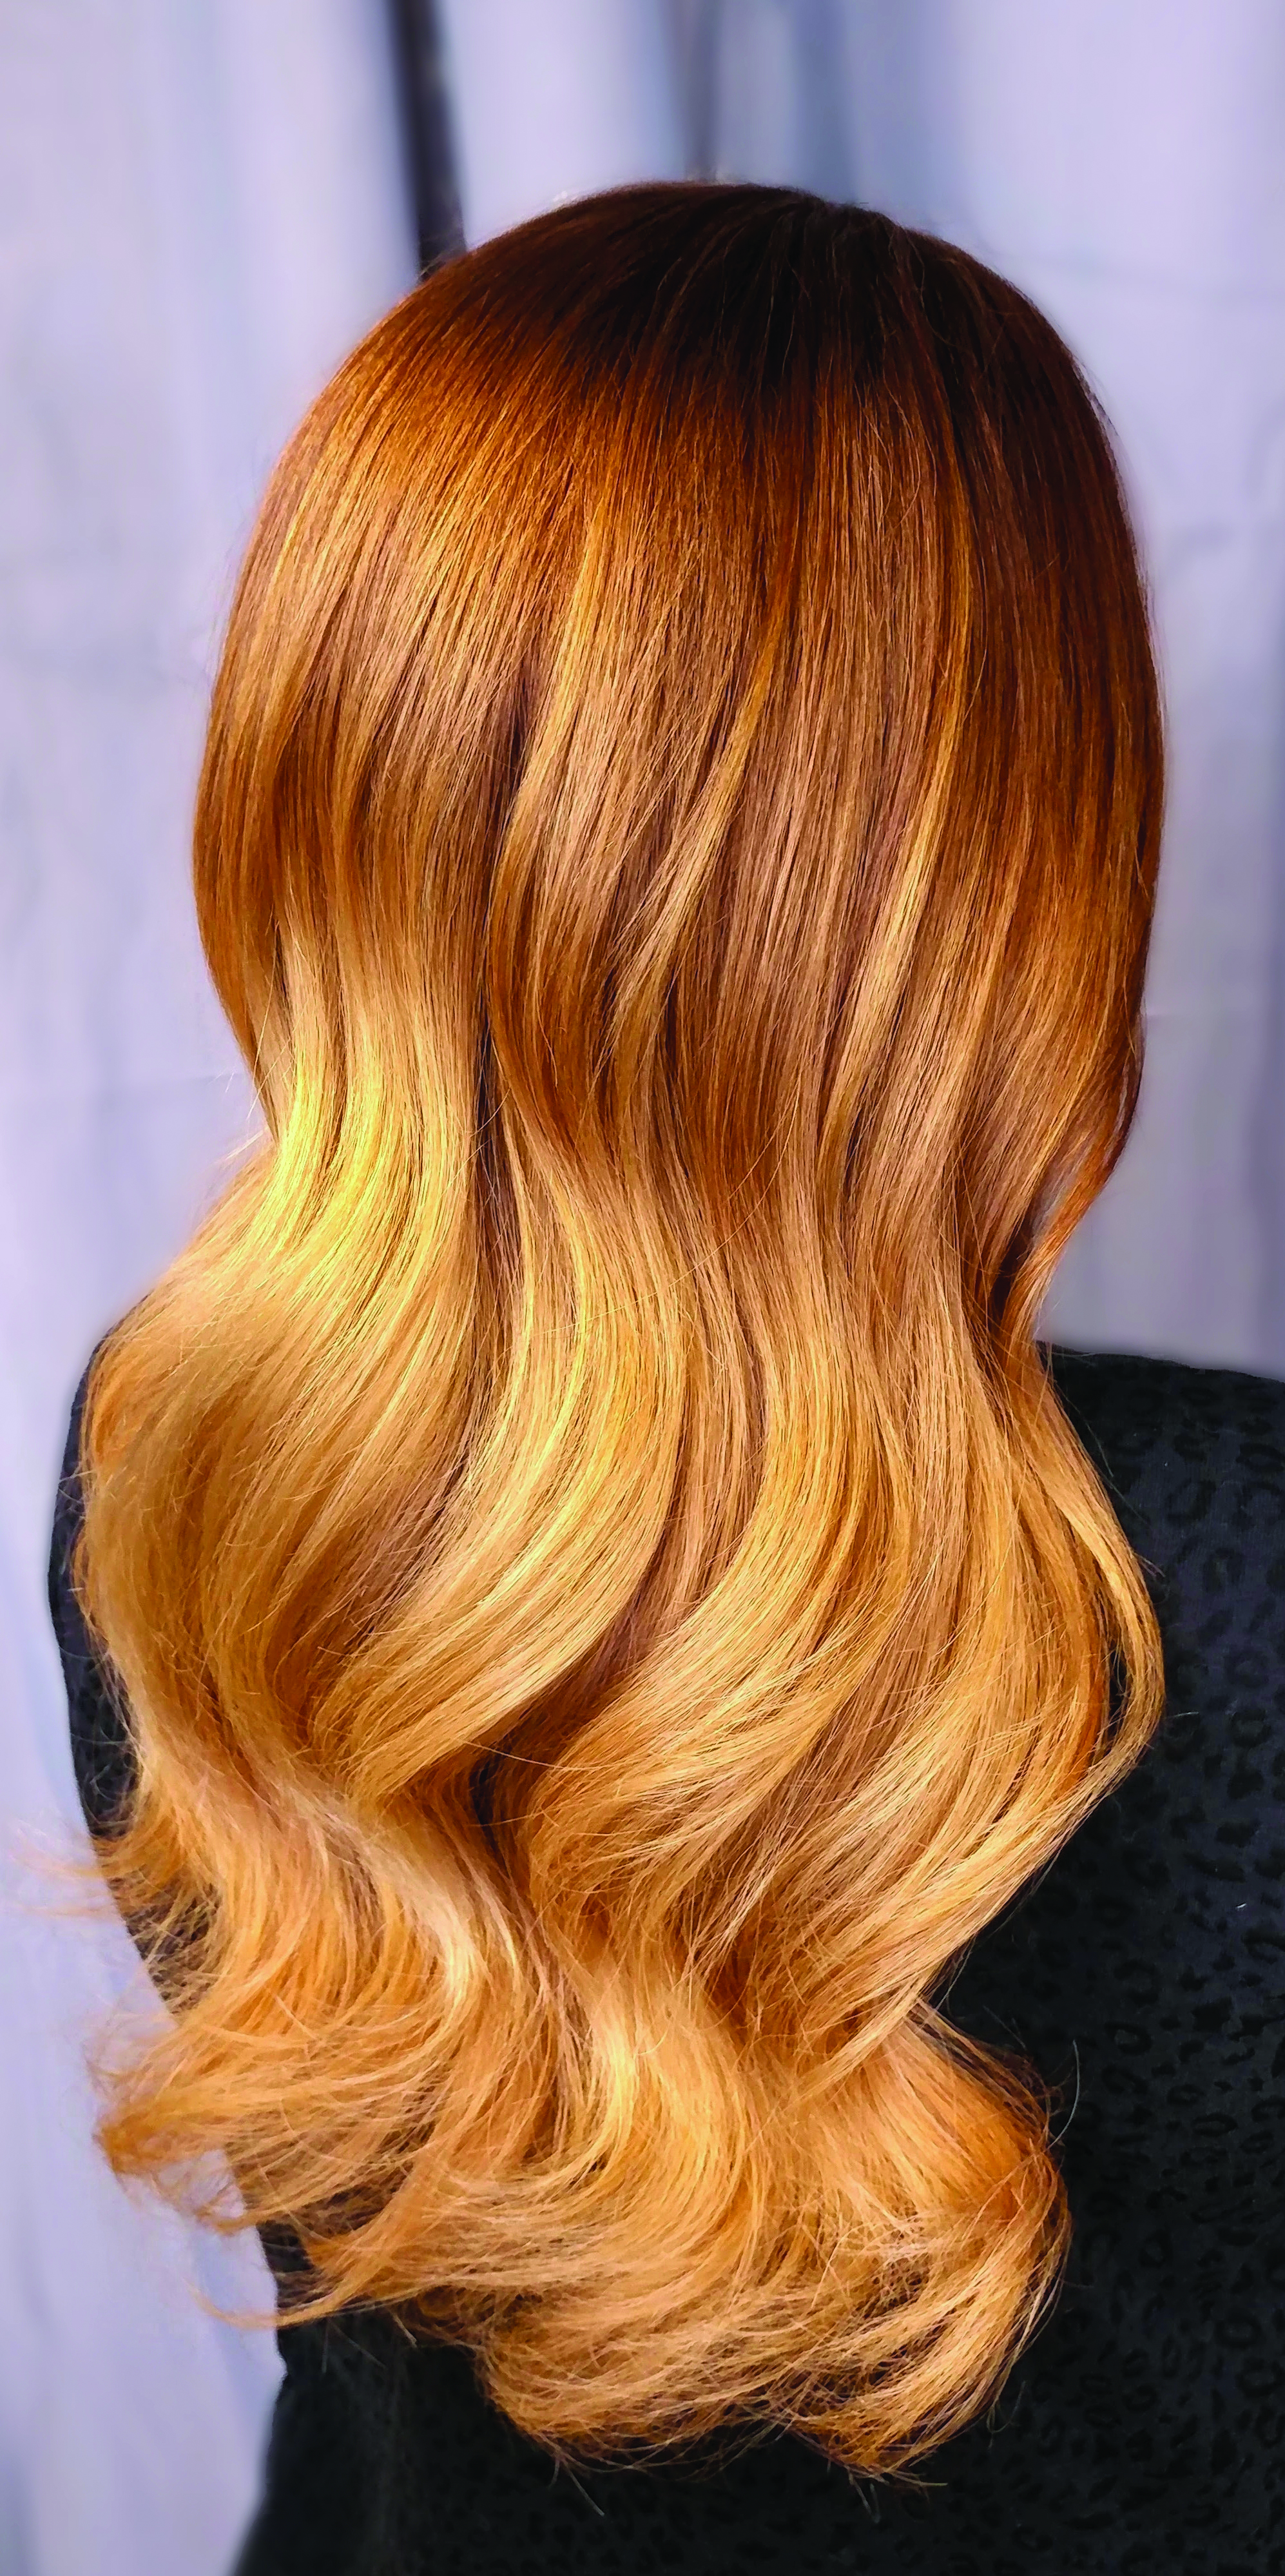 Golden hair gleams with dimensional color.